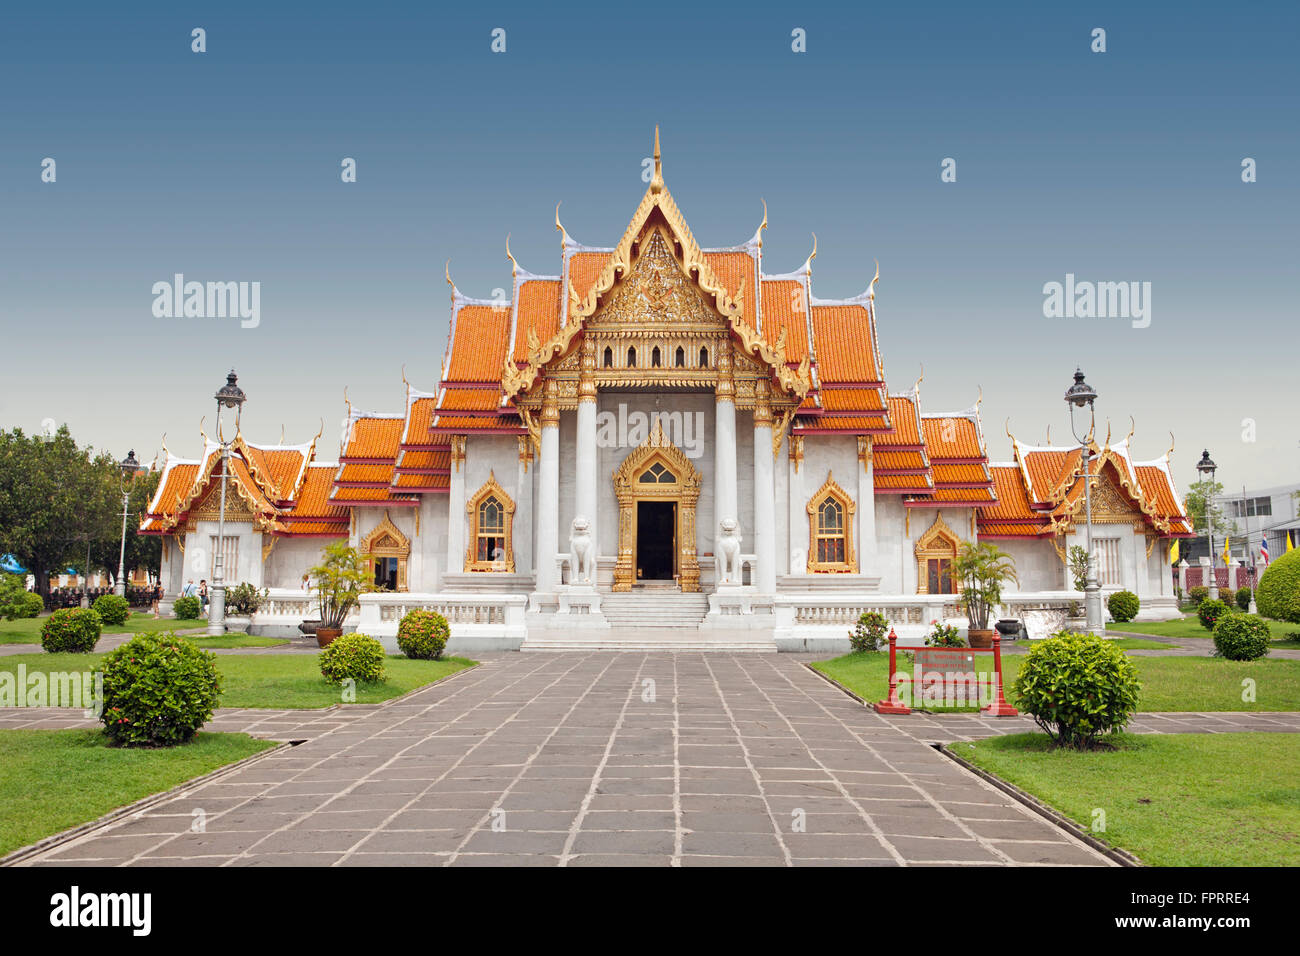 Asia South East Thailand Bangkok Buddhist Architecture The Marble Temple Wat Benchamabophit Royal Monastery